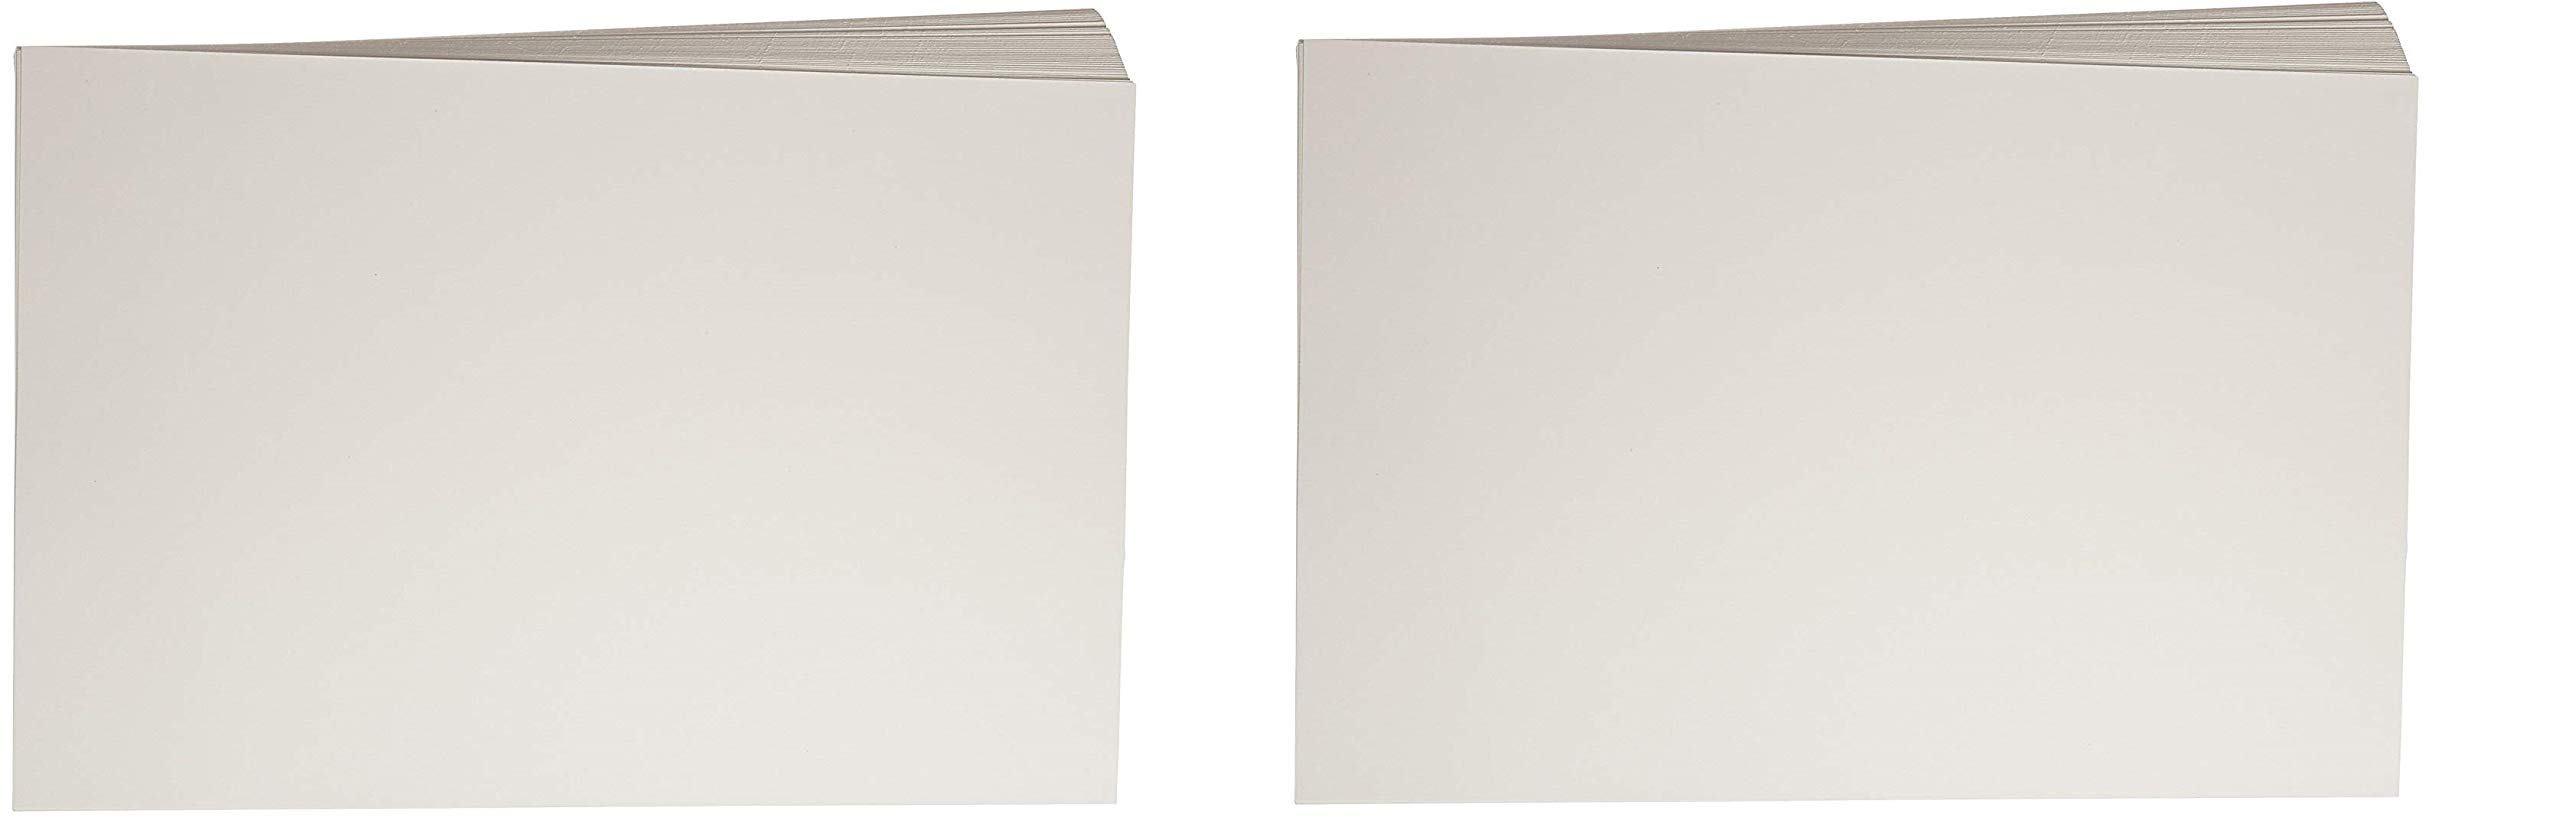 Sax Watercolor Beginner Paper, 90 lbs, 12 x 18 Inches, Natural White, Pack of 100 (2 X Pack of 100)